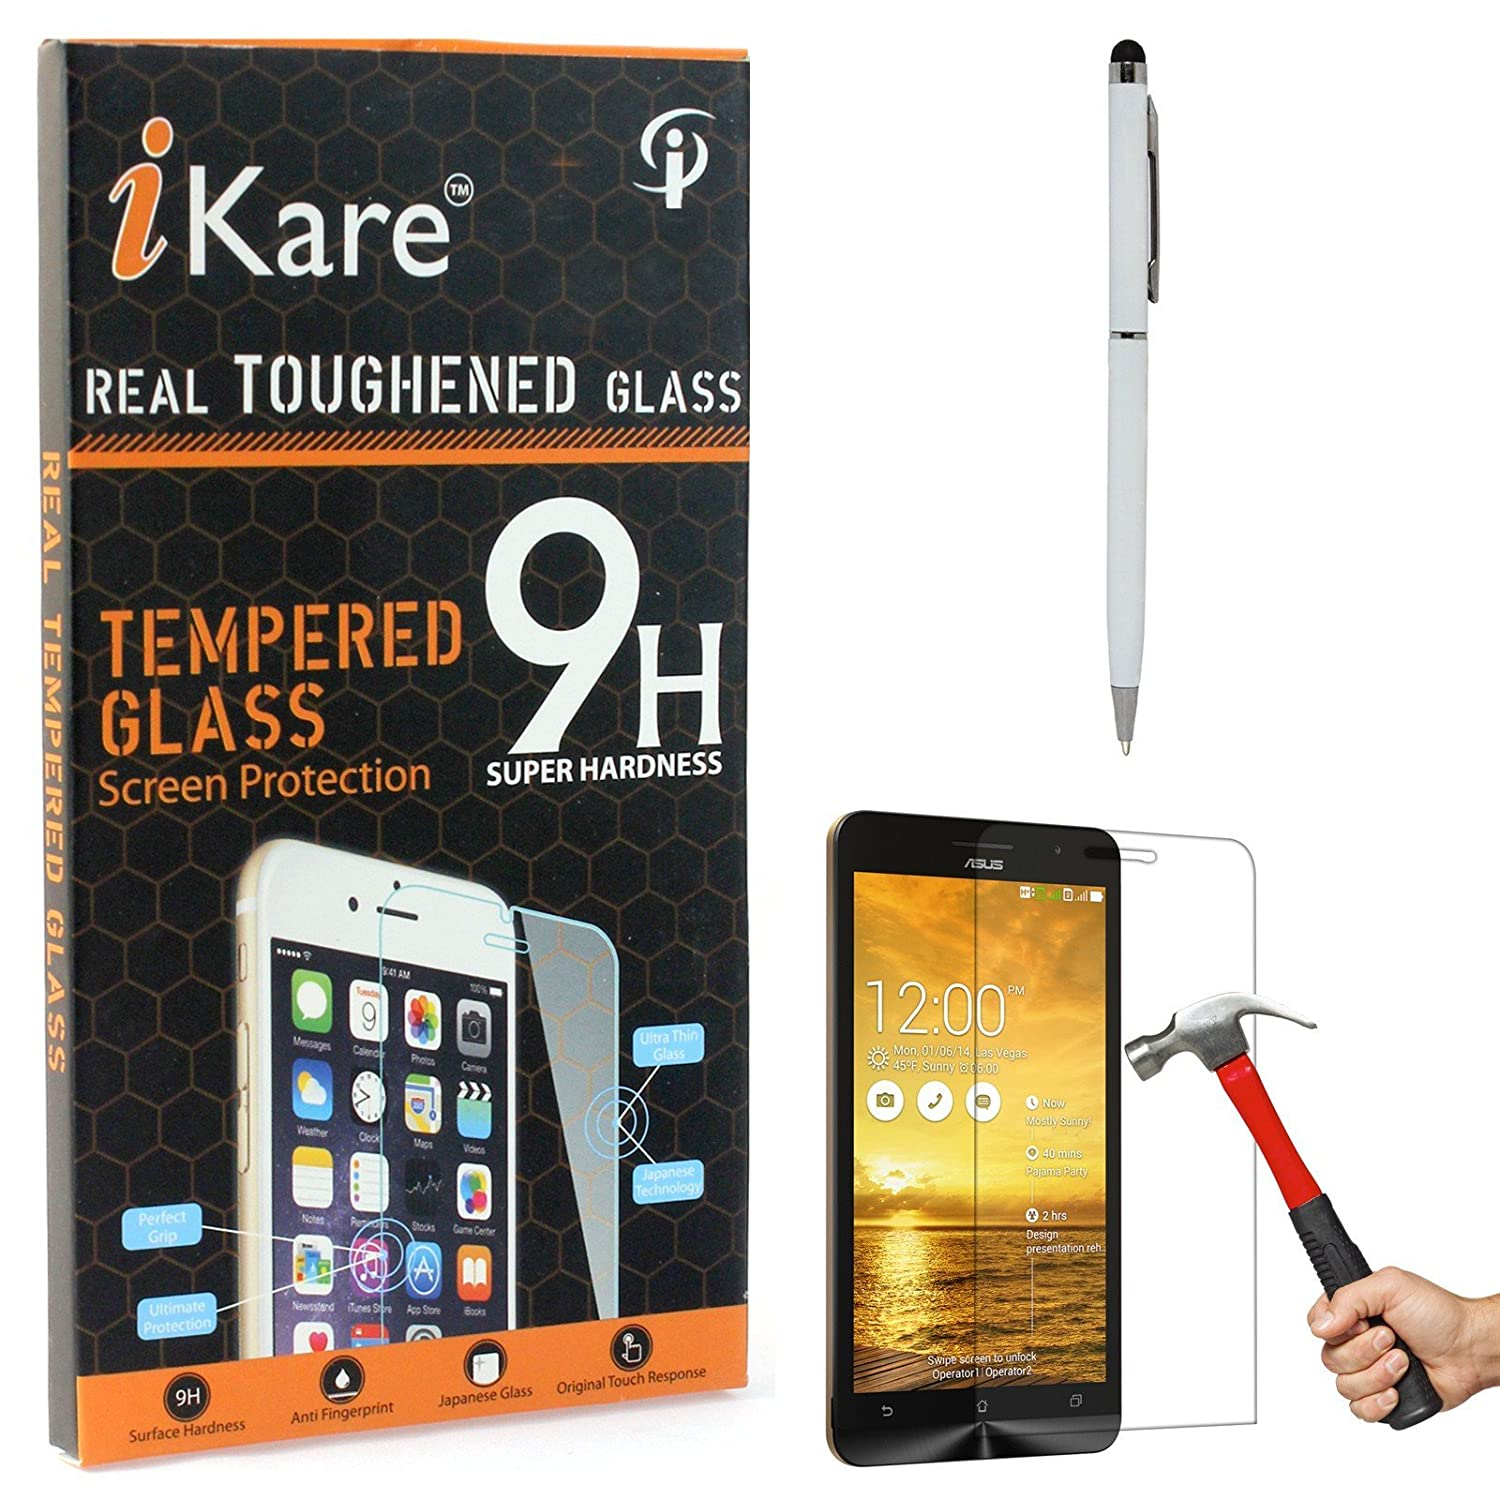 iKare Tempered Glass for Asus Zenfone 5, Tempered Screen Protector